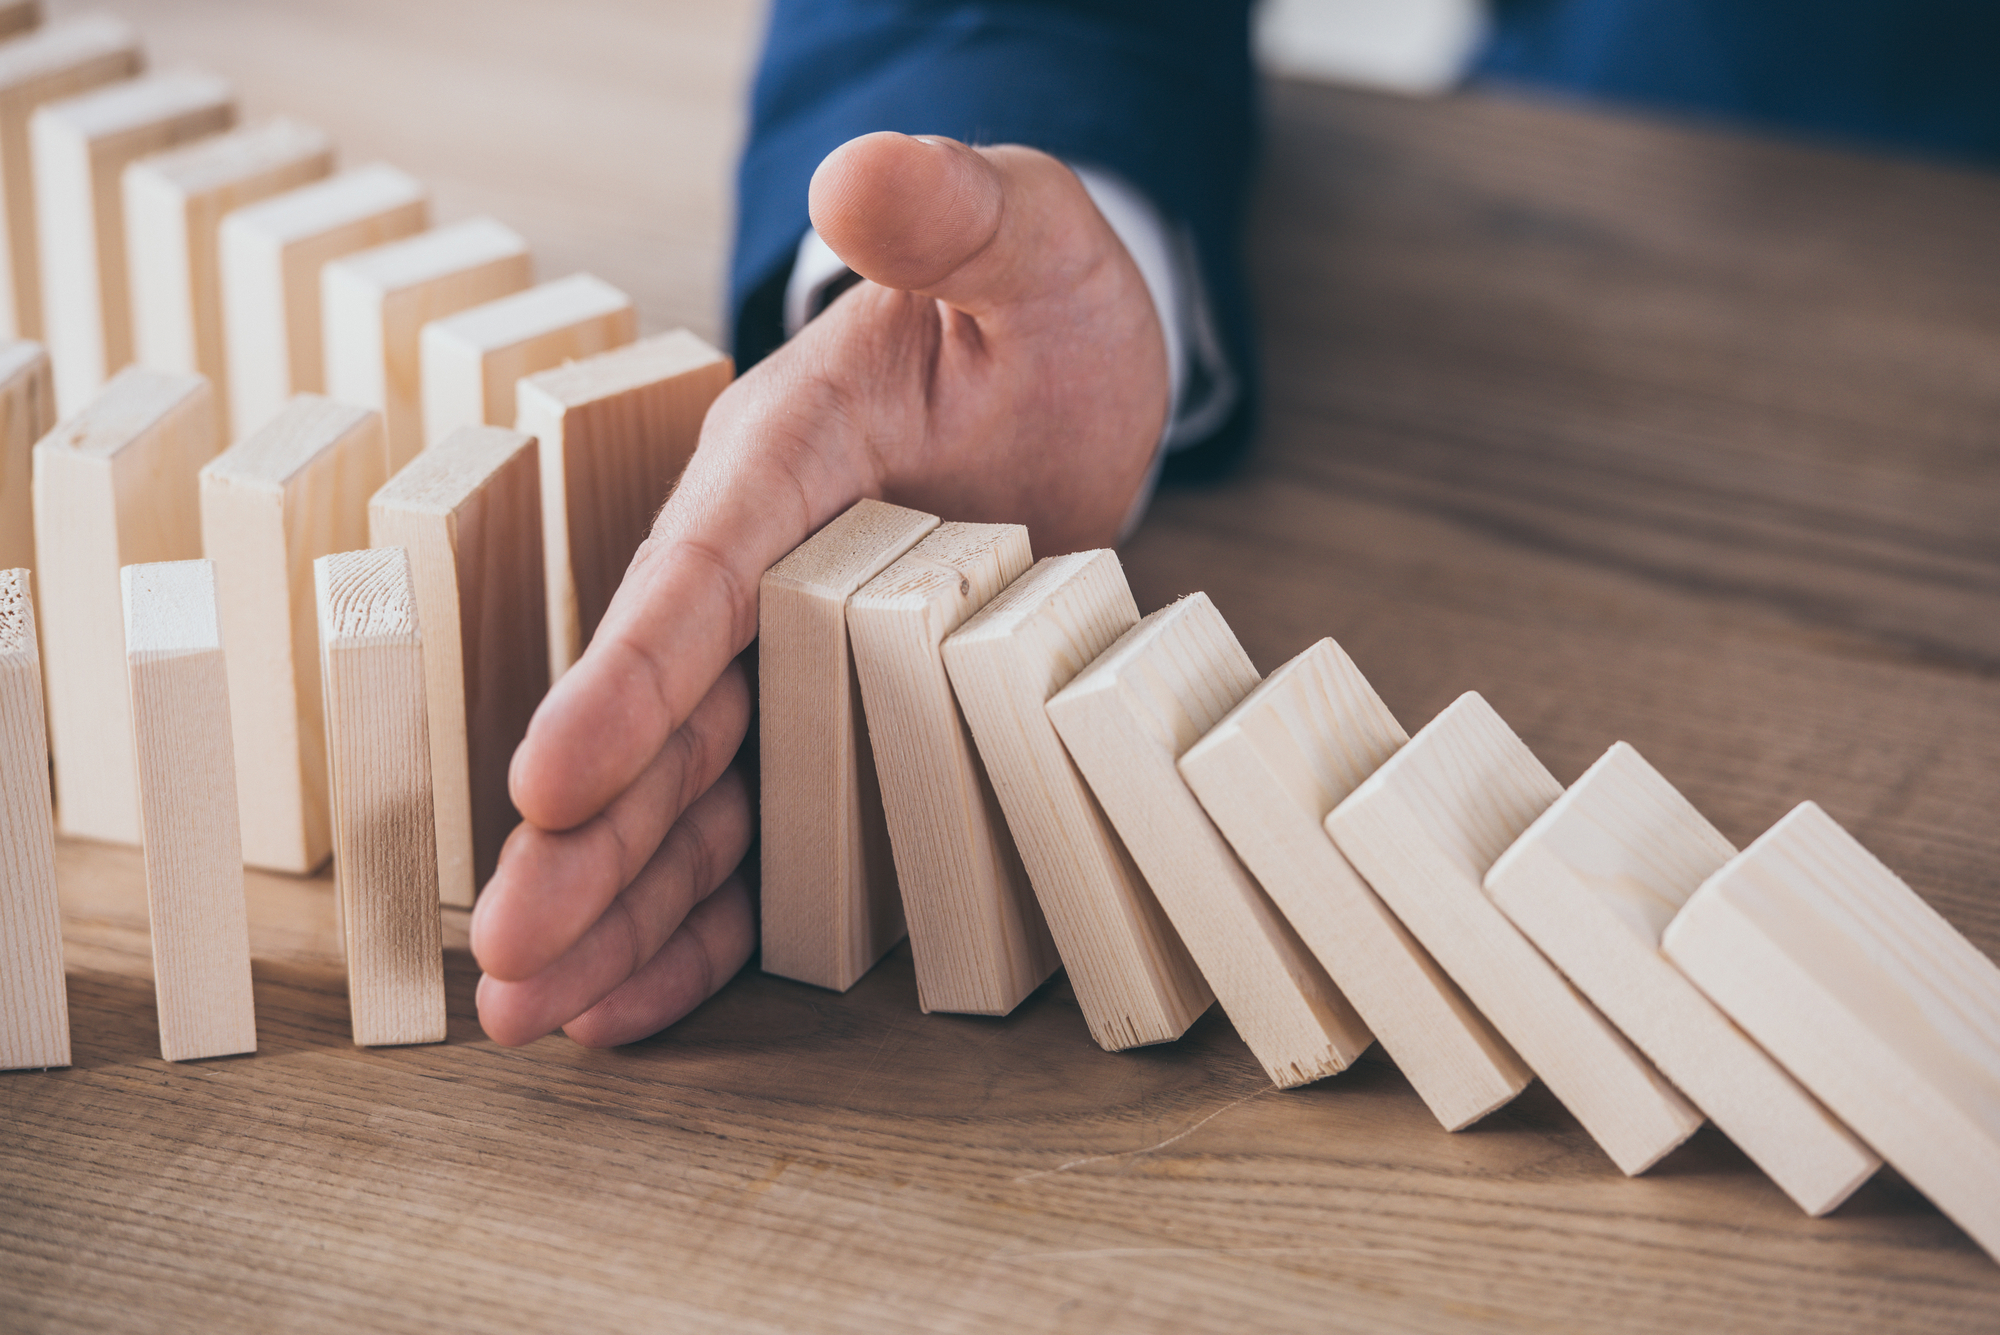 Partial view of risk manager blocking domino effect of falling wooden blocks